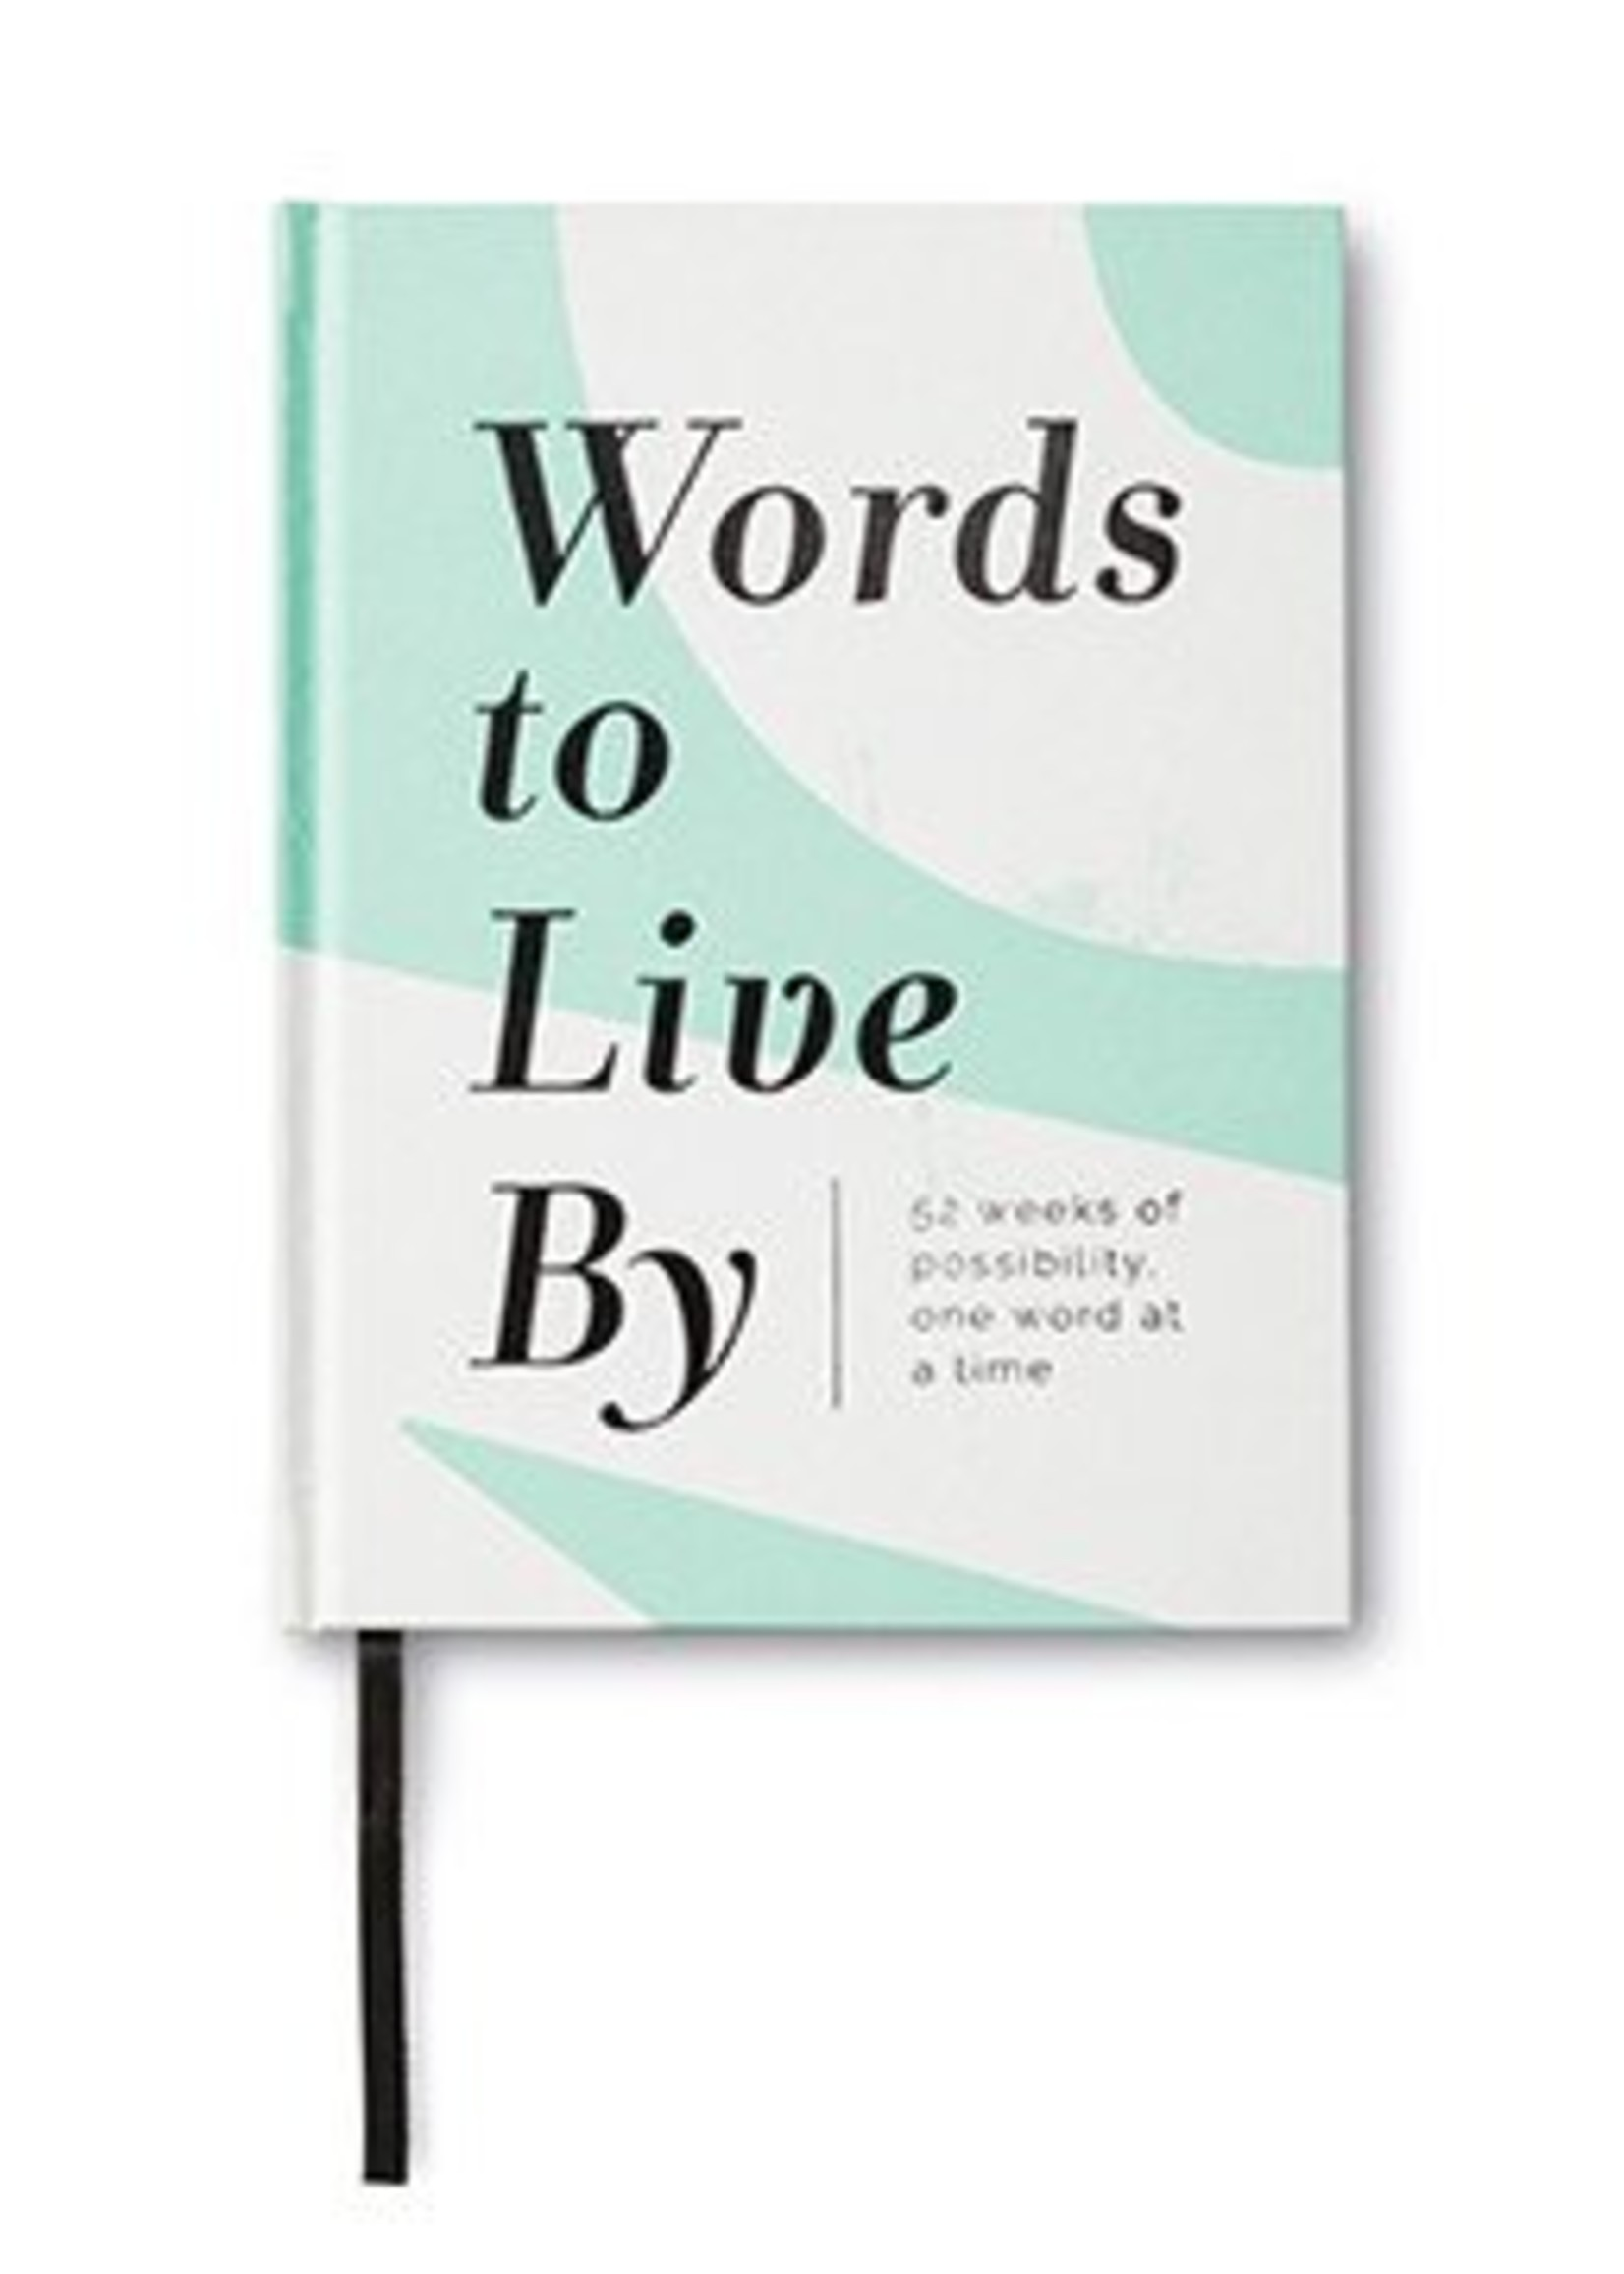 Words to Live By - 52 Weeks of Possibility, One Word at a Time